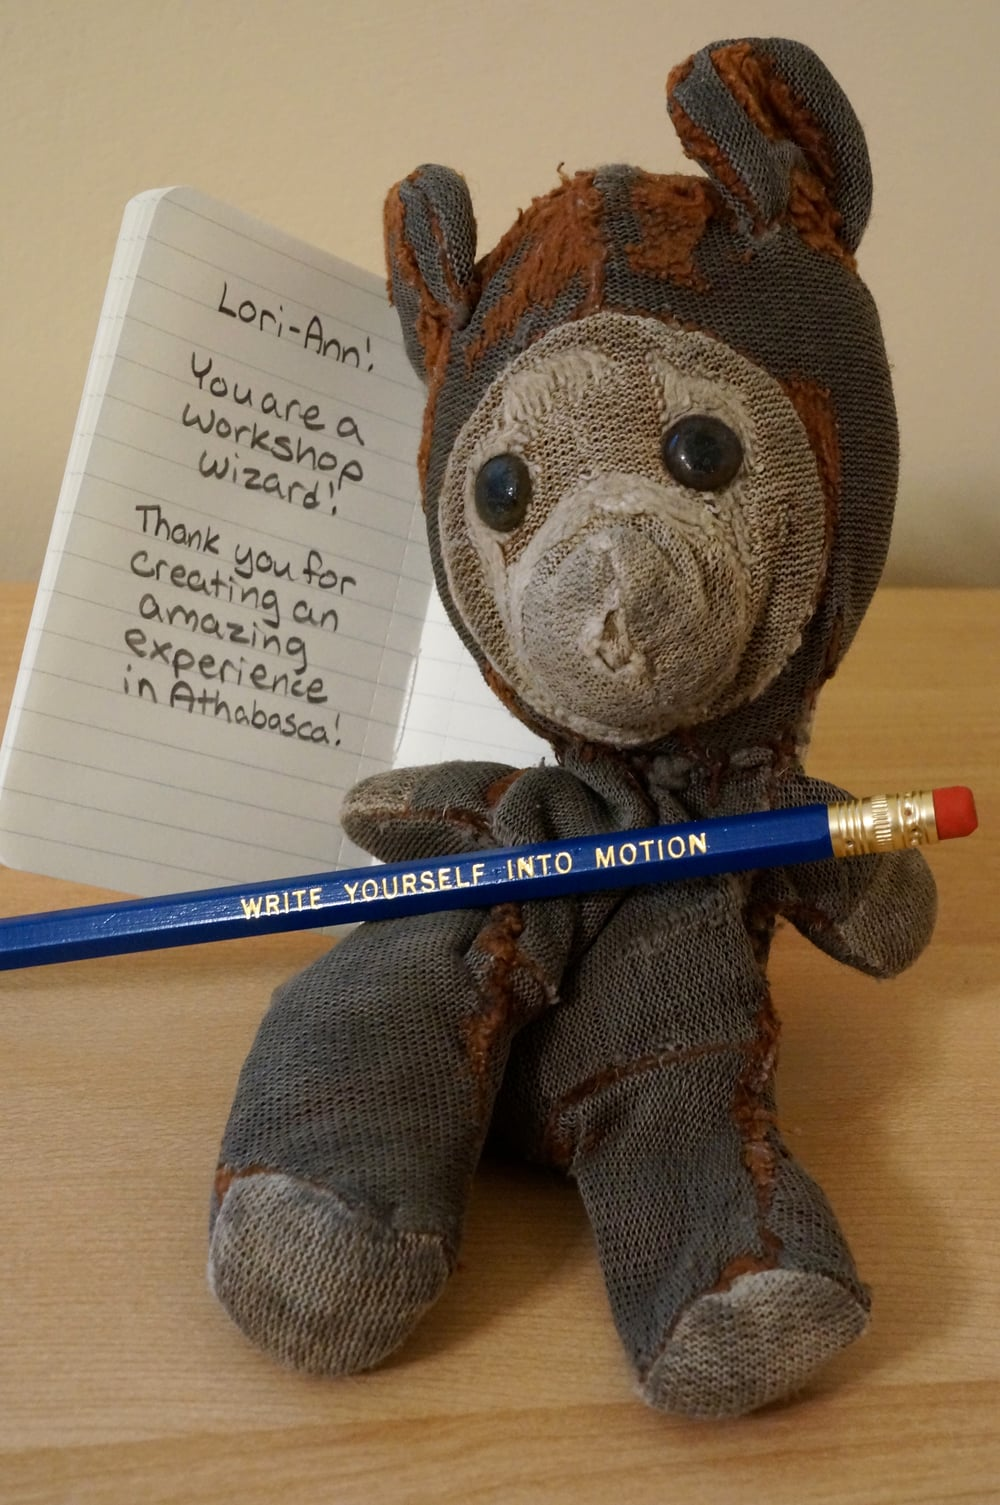 andy the bear likes northerly writing + yoga